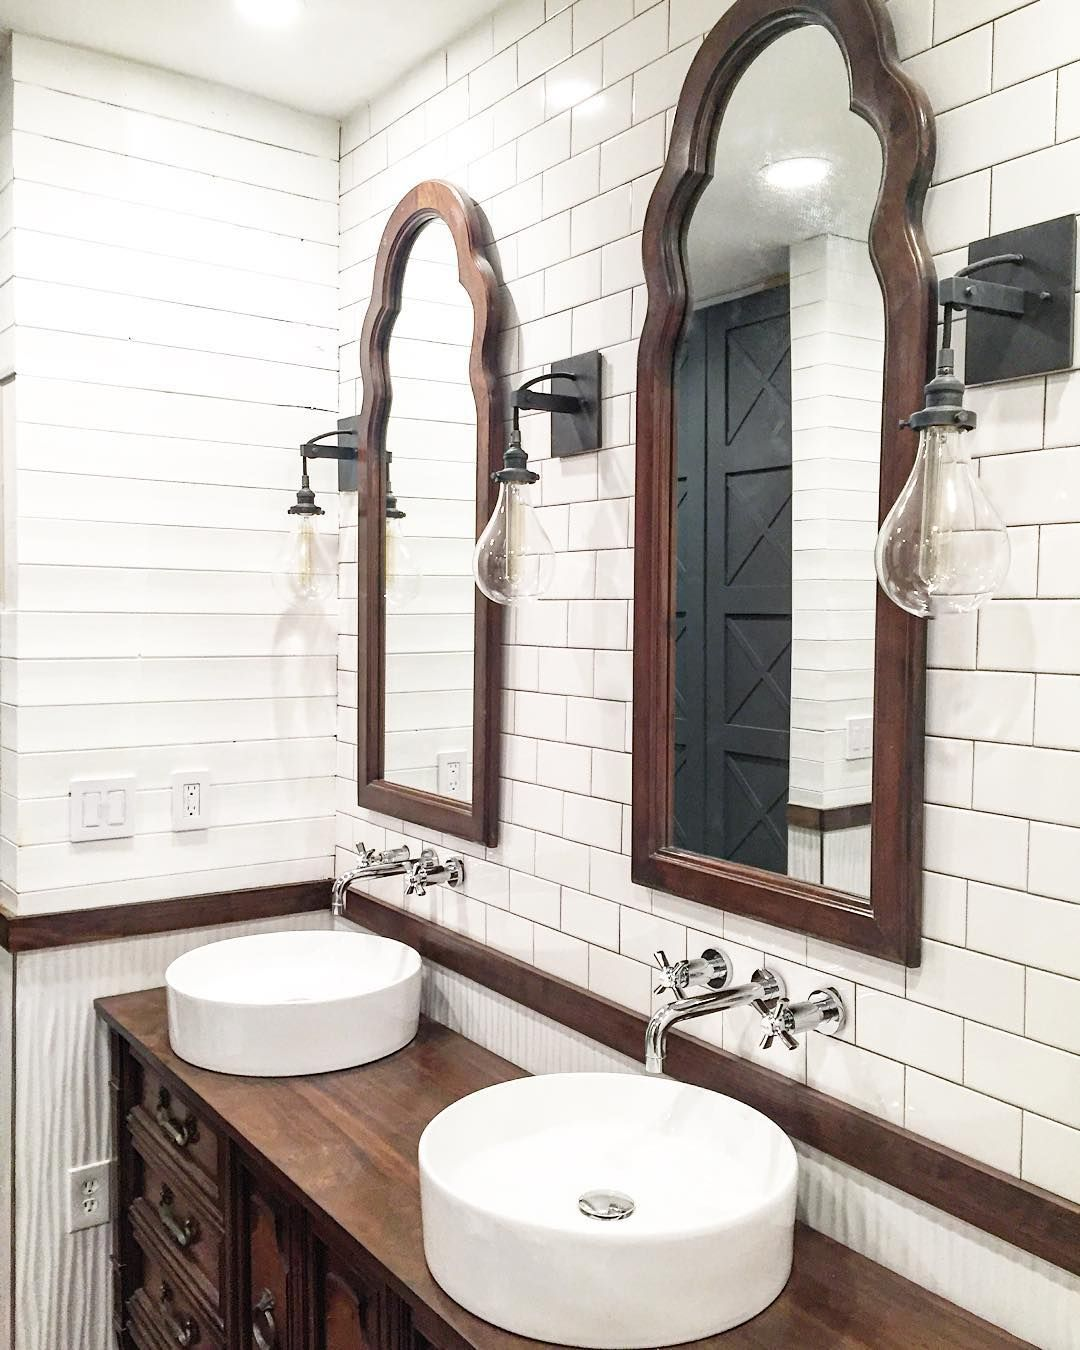 Rustic Farmhouse Bathroom Design With Plank Walls And Subway Tile.